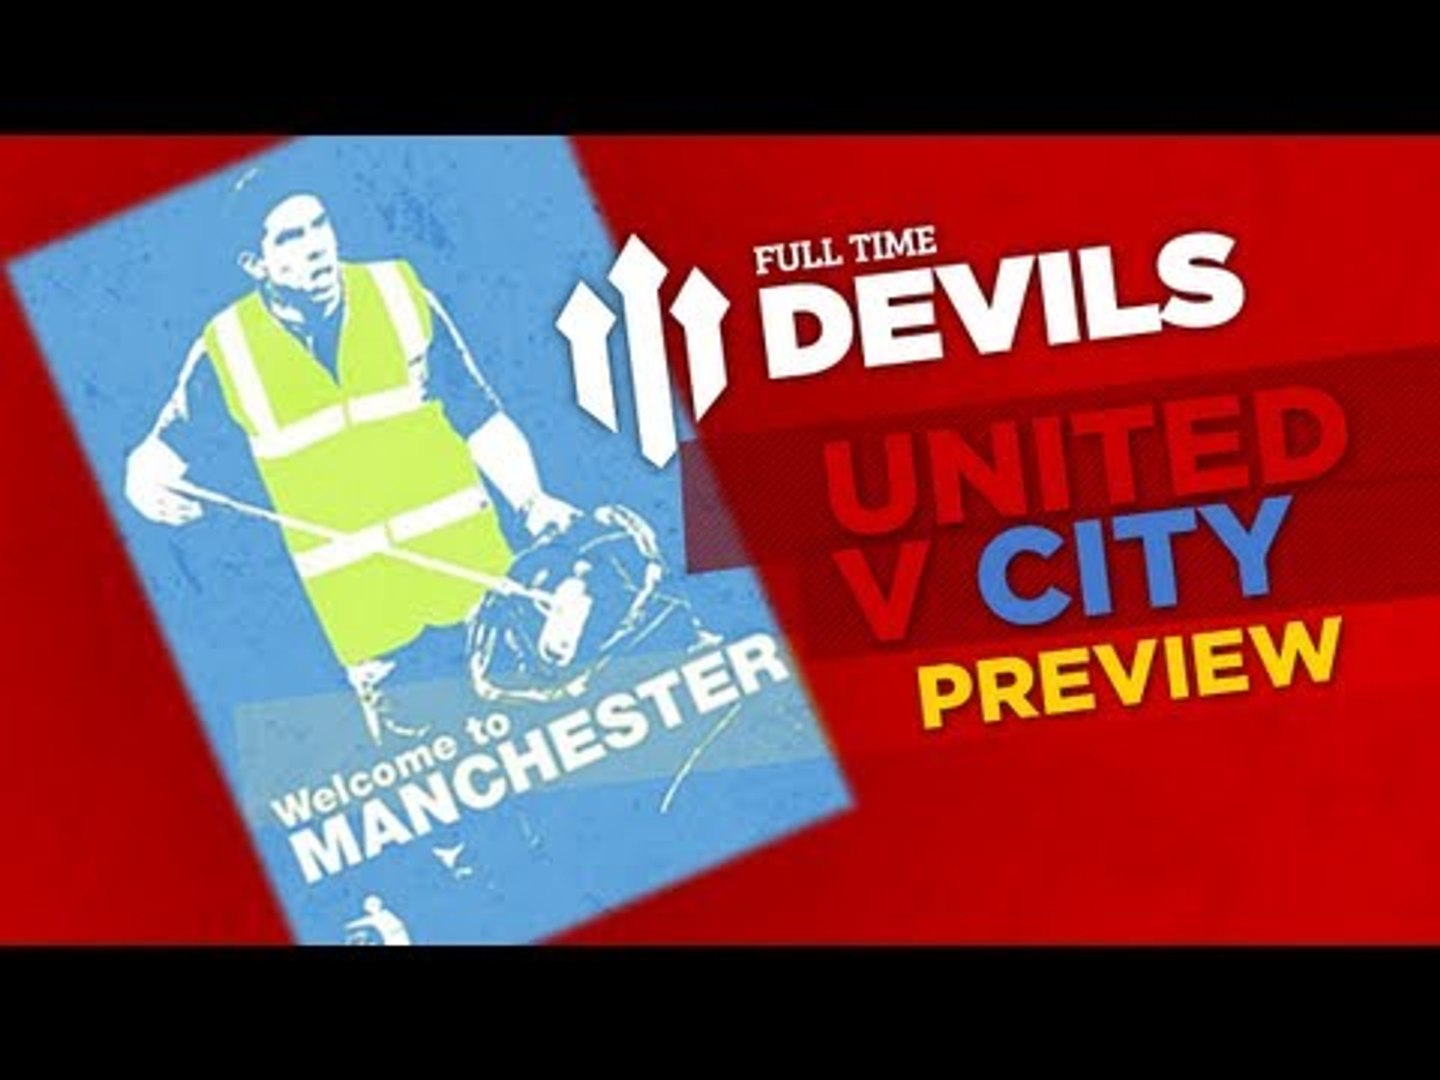 Welcome to Manchester! |  Manchester United v Man City 8/4/2013 | DEVILS PREVIEW